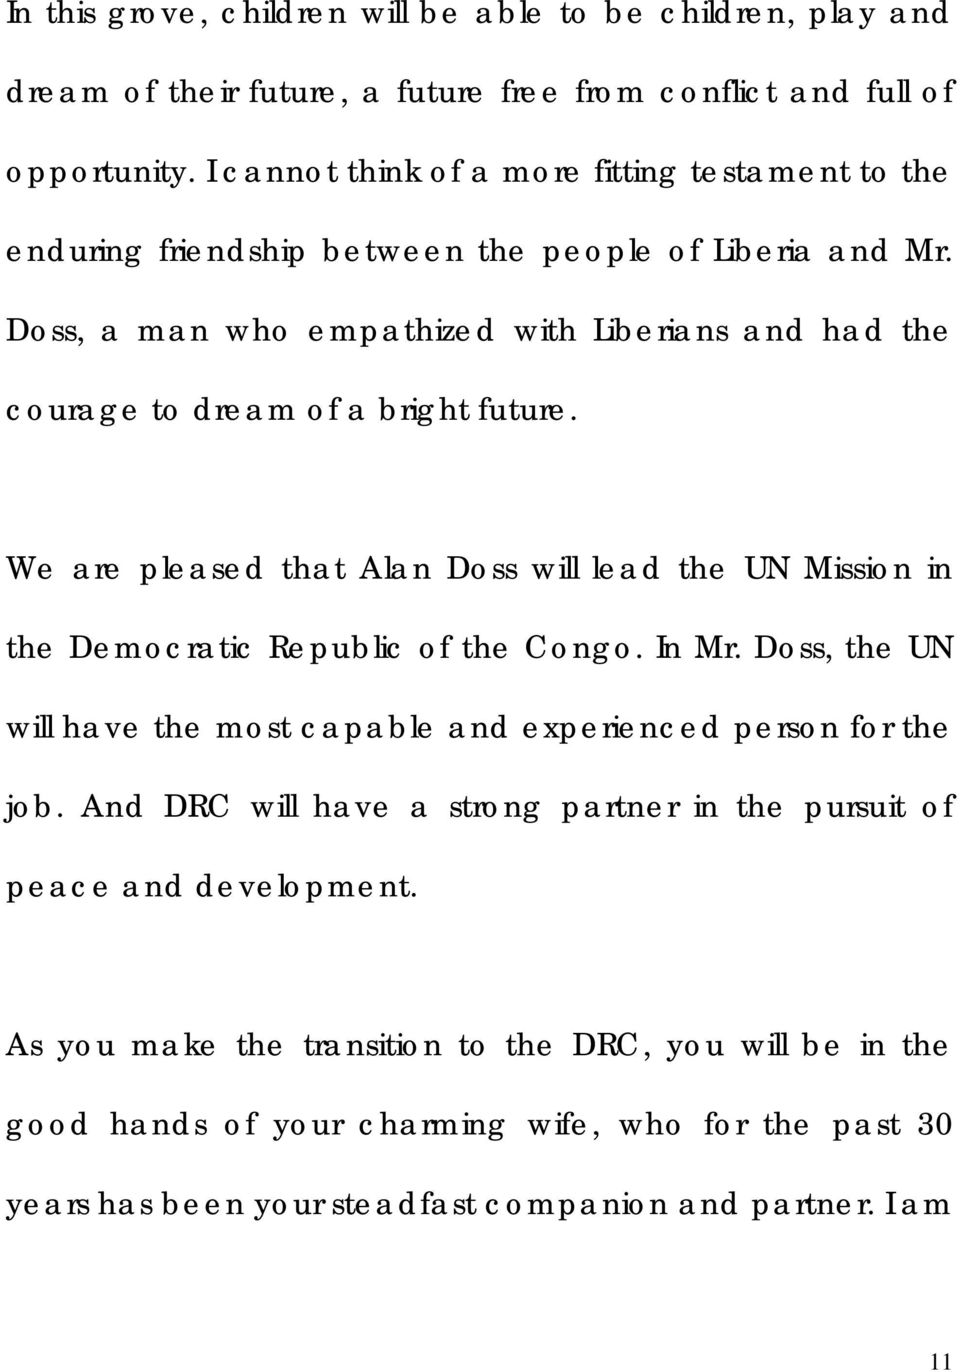 Doss, a man who empathized with Liberians and had the courage to dream of a bright future. We are pleased that Alan Doss will lead the UN Mission in the Democratic Republic of the Congo.